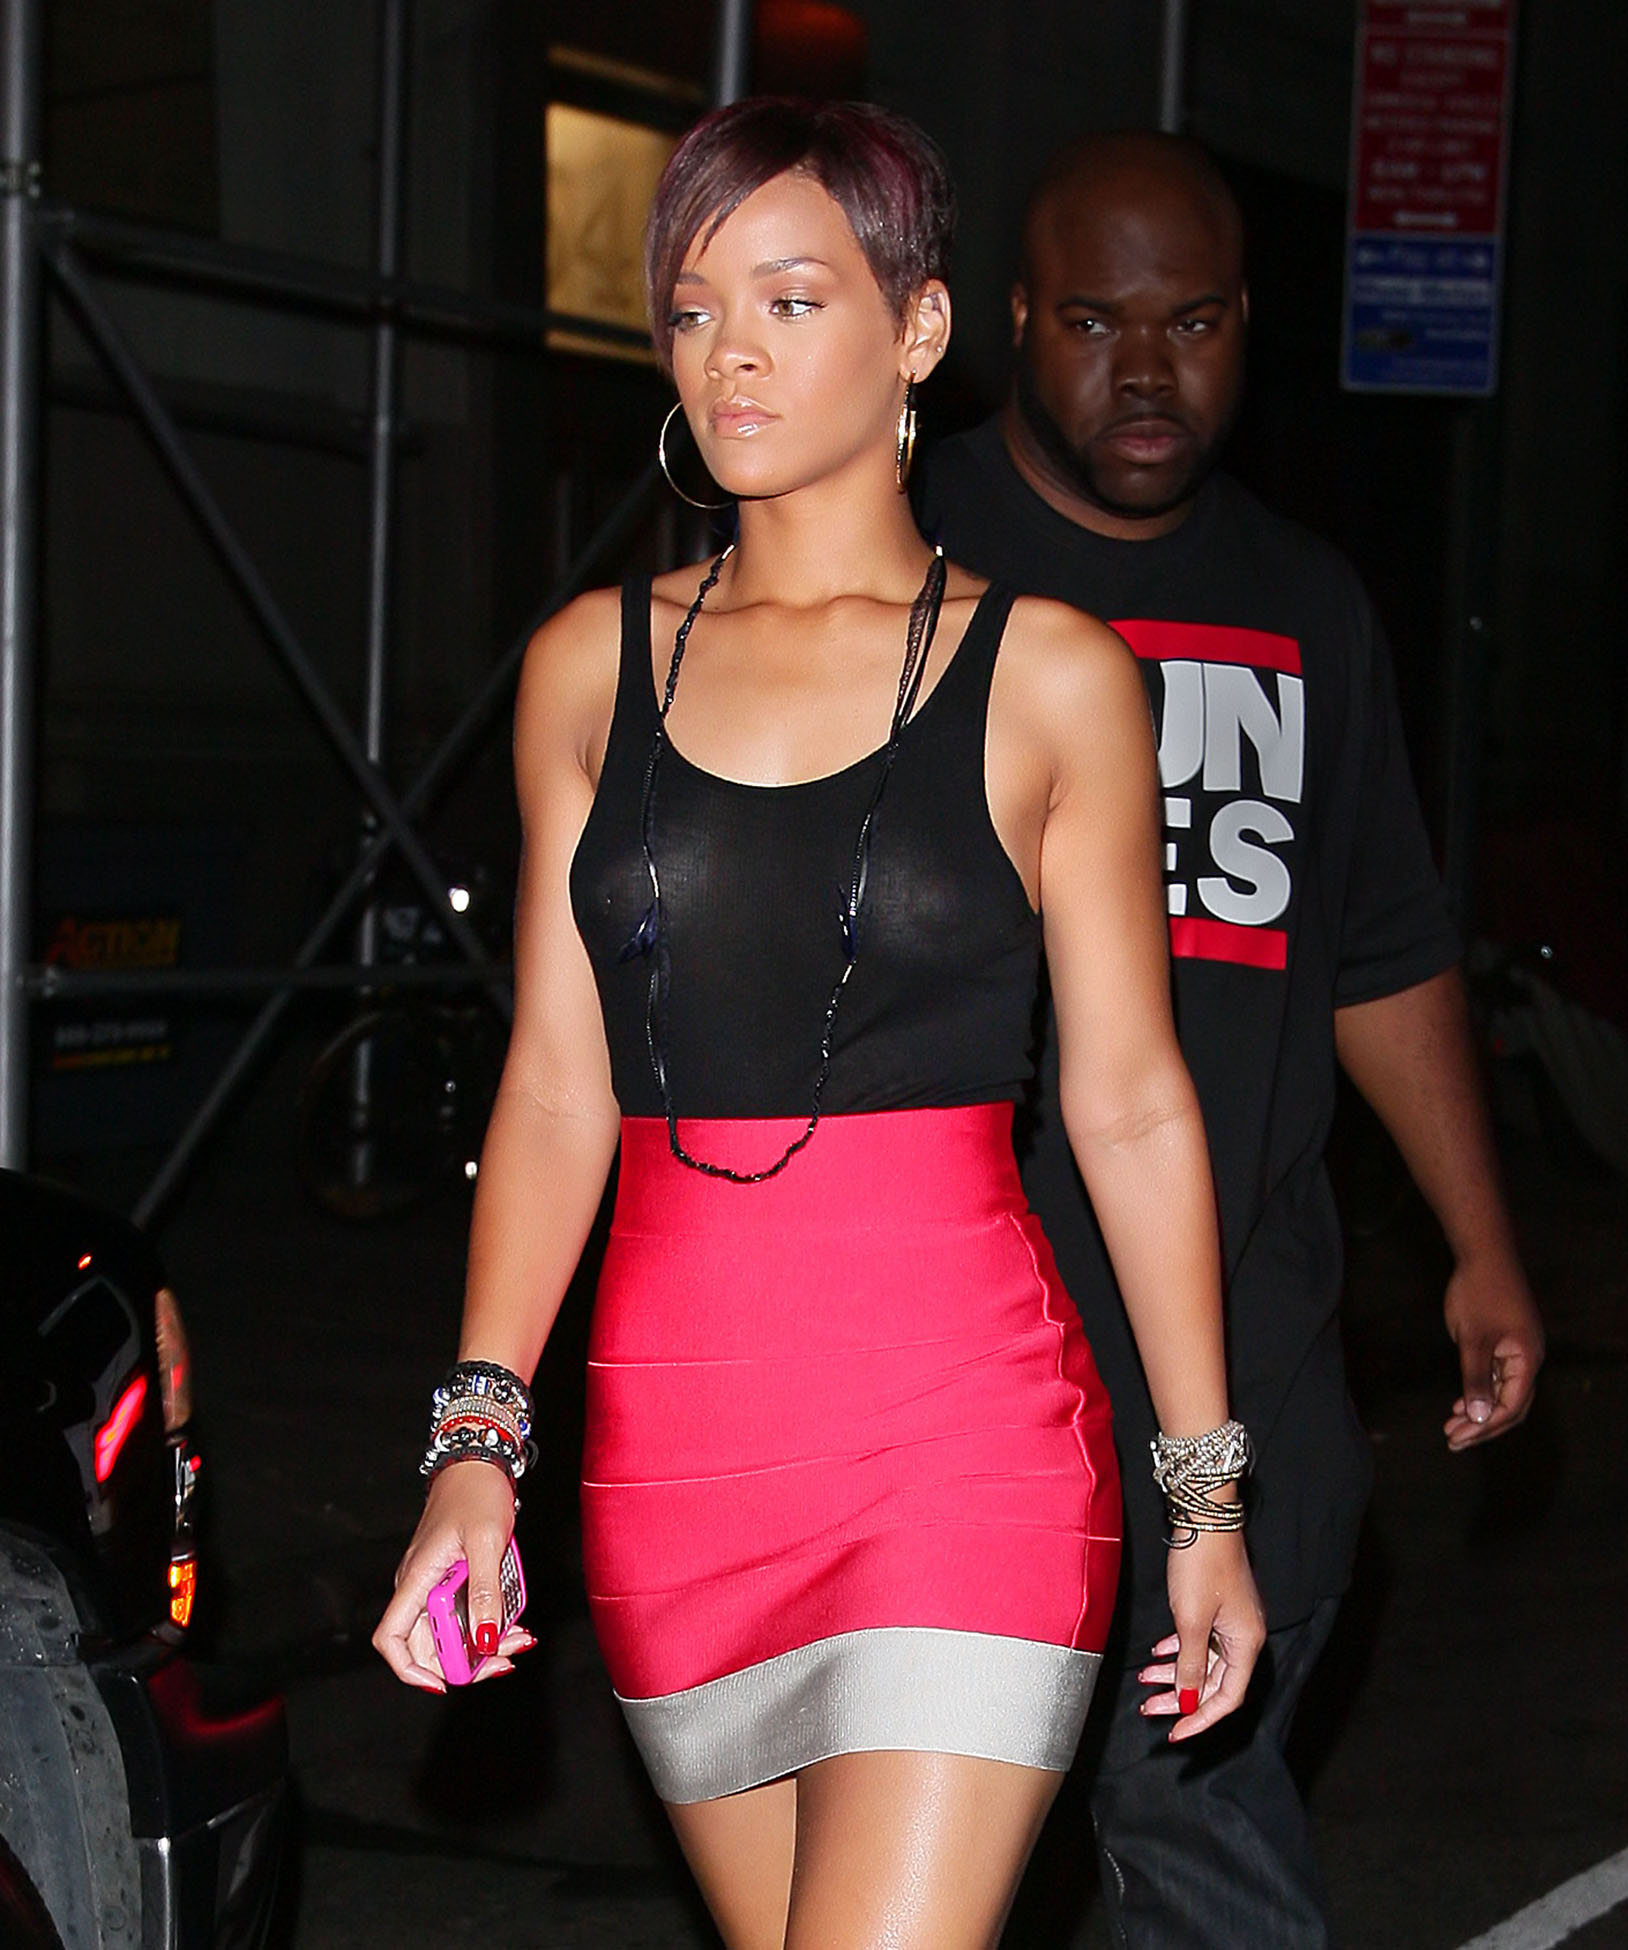 Rihanna looks red hot in a see-through top exposing her nipples and ...